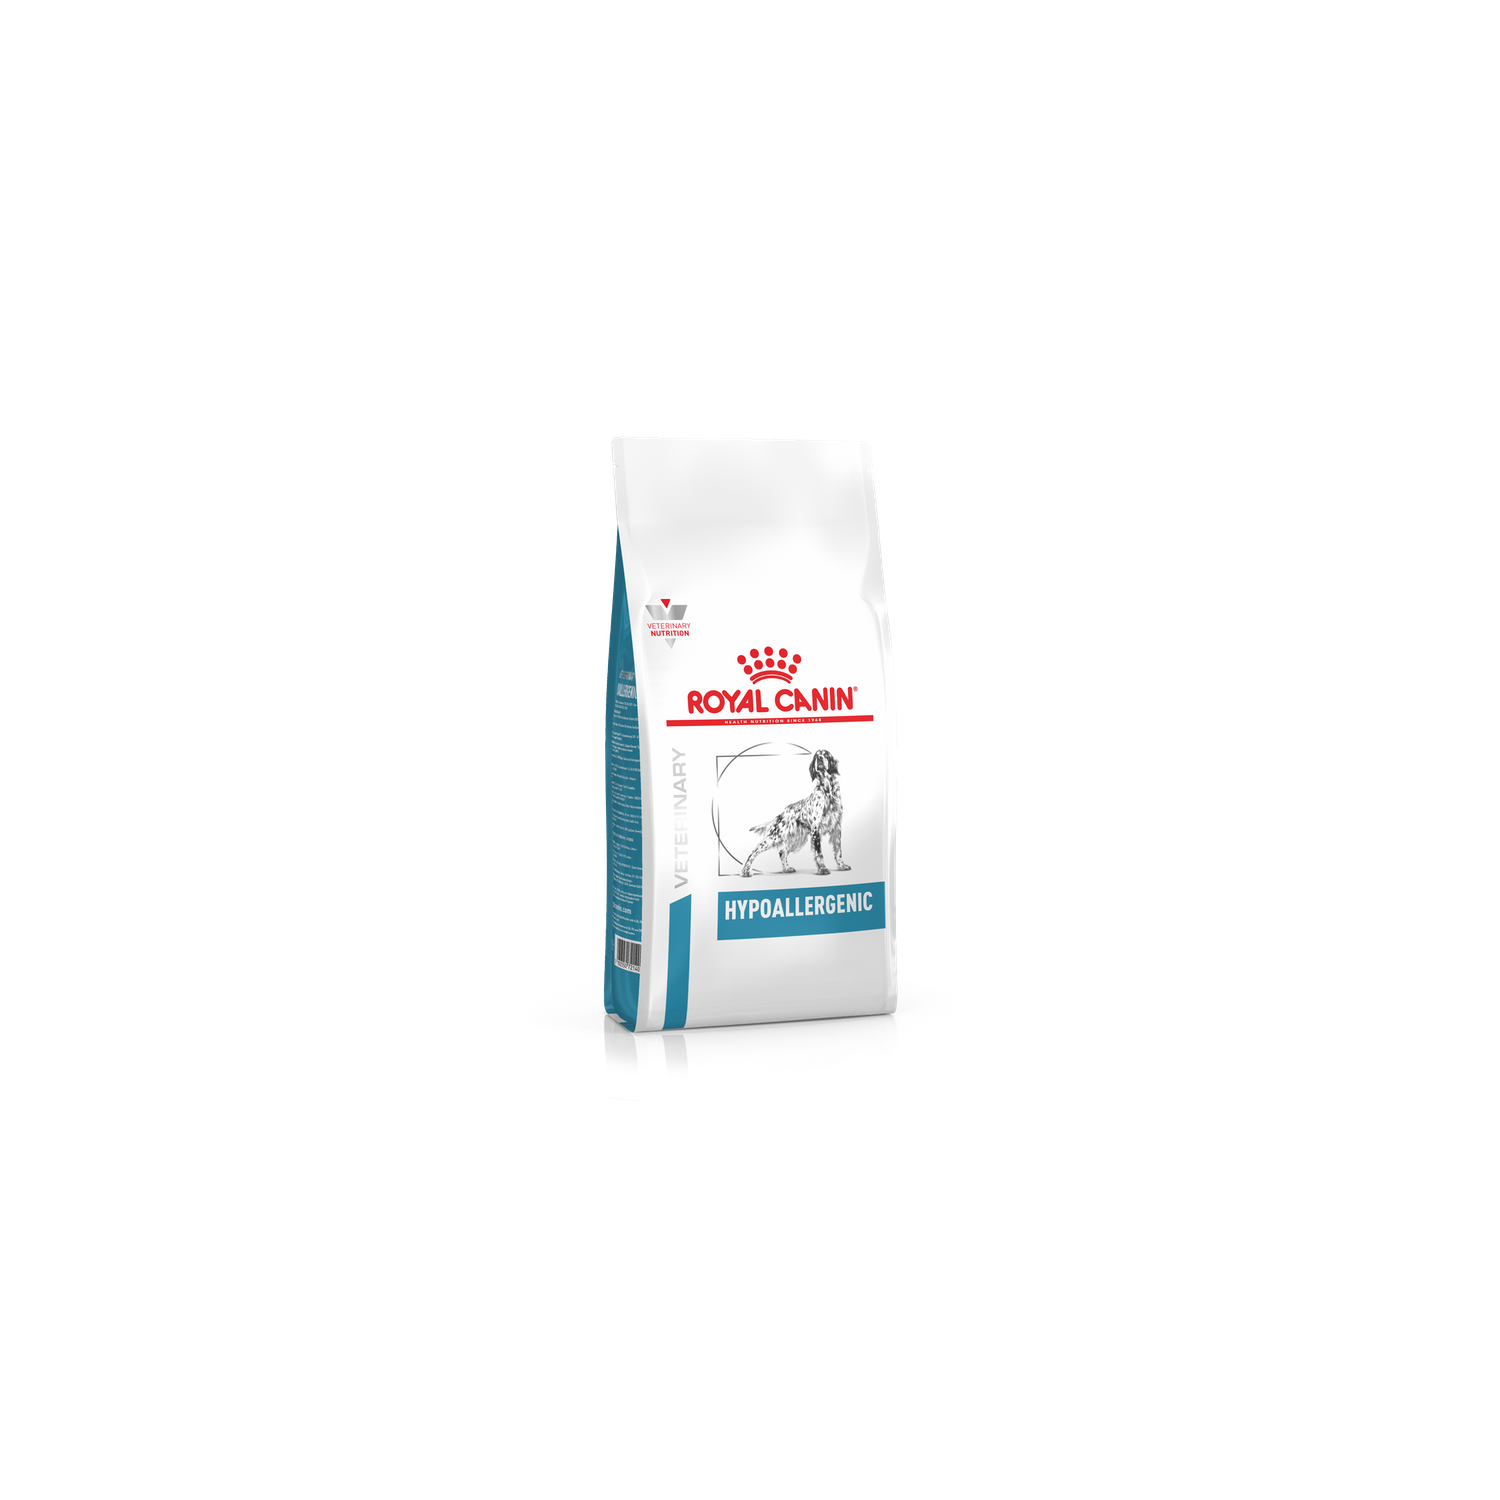 Royal Canin - Royal Canin Hypoallergenic